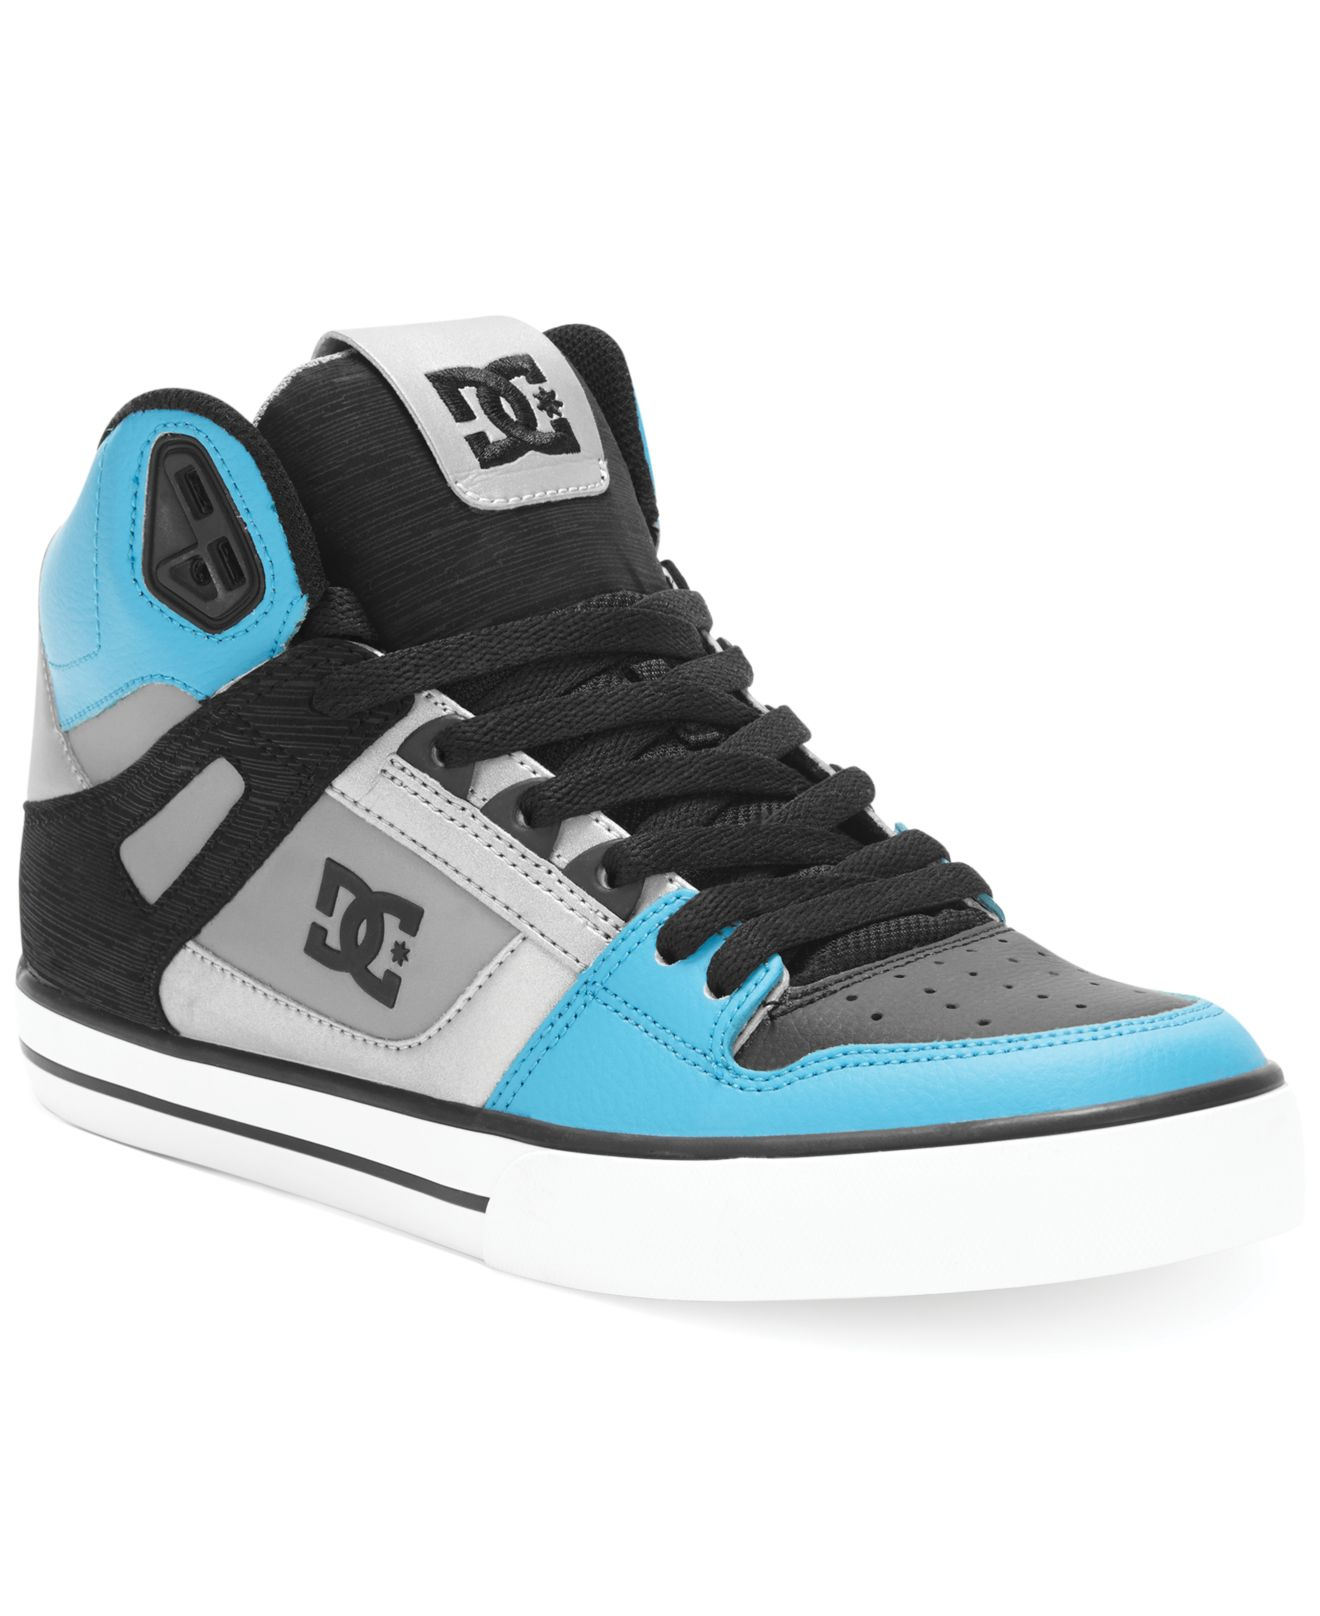 90f2323ec24848 Lyst - DC Shoes Spartan High Wc Sneakers in Blue for Men